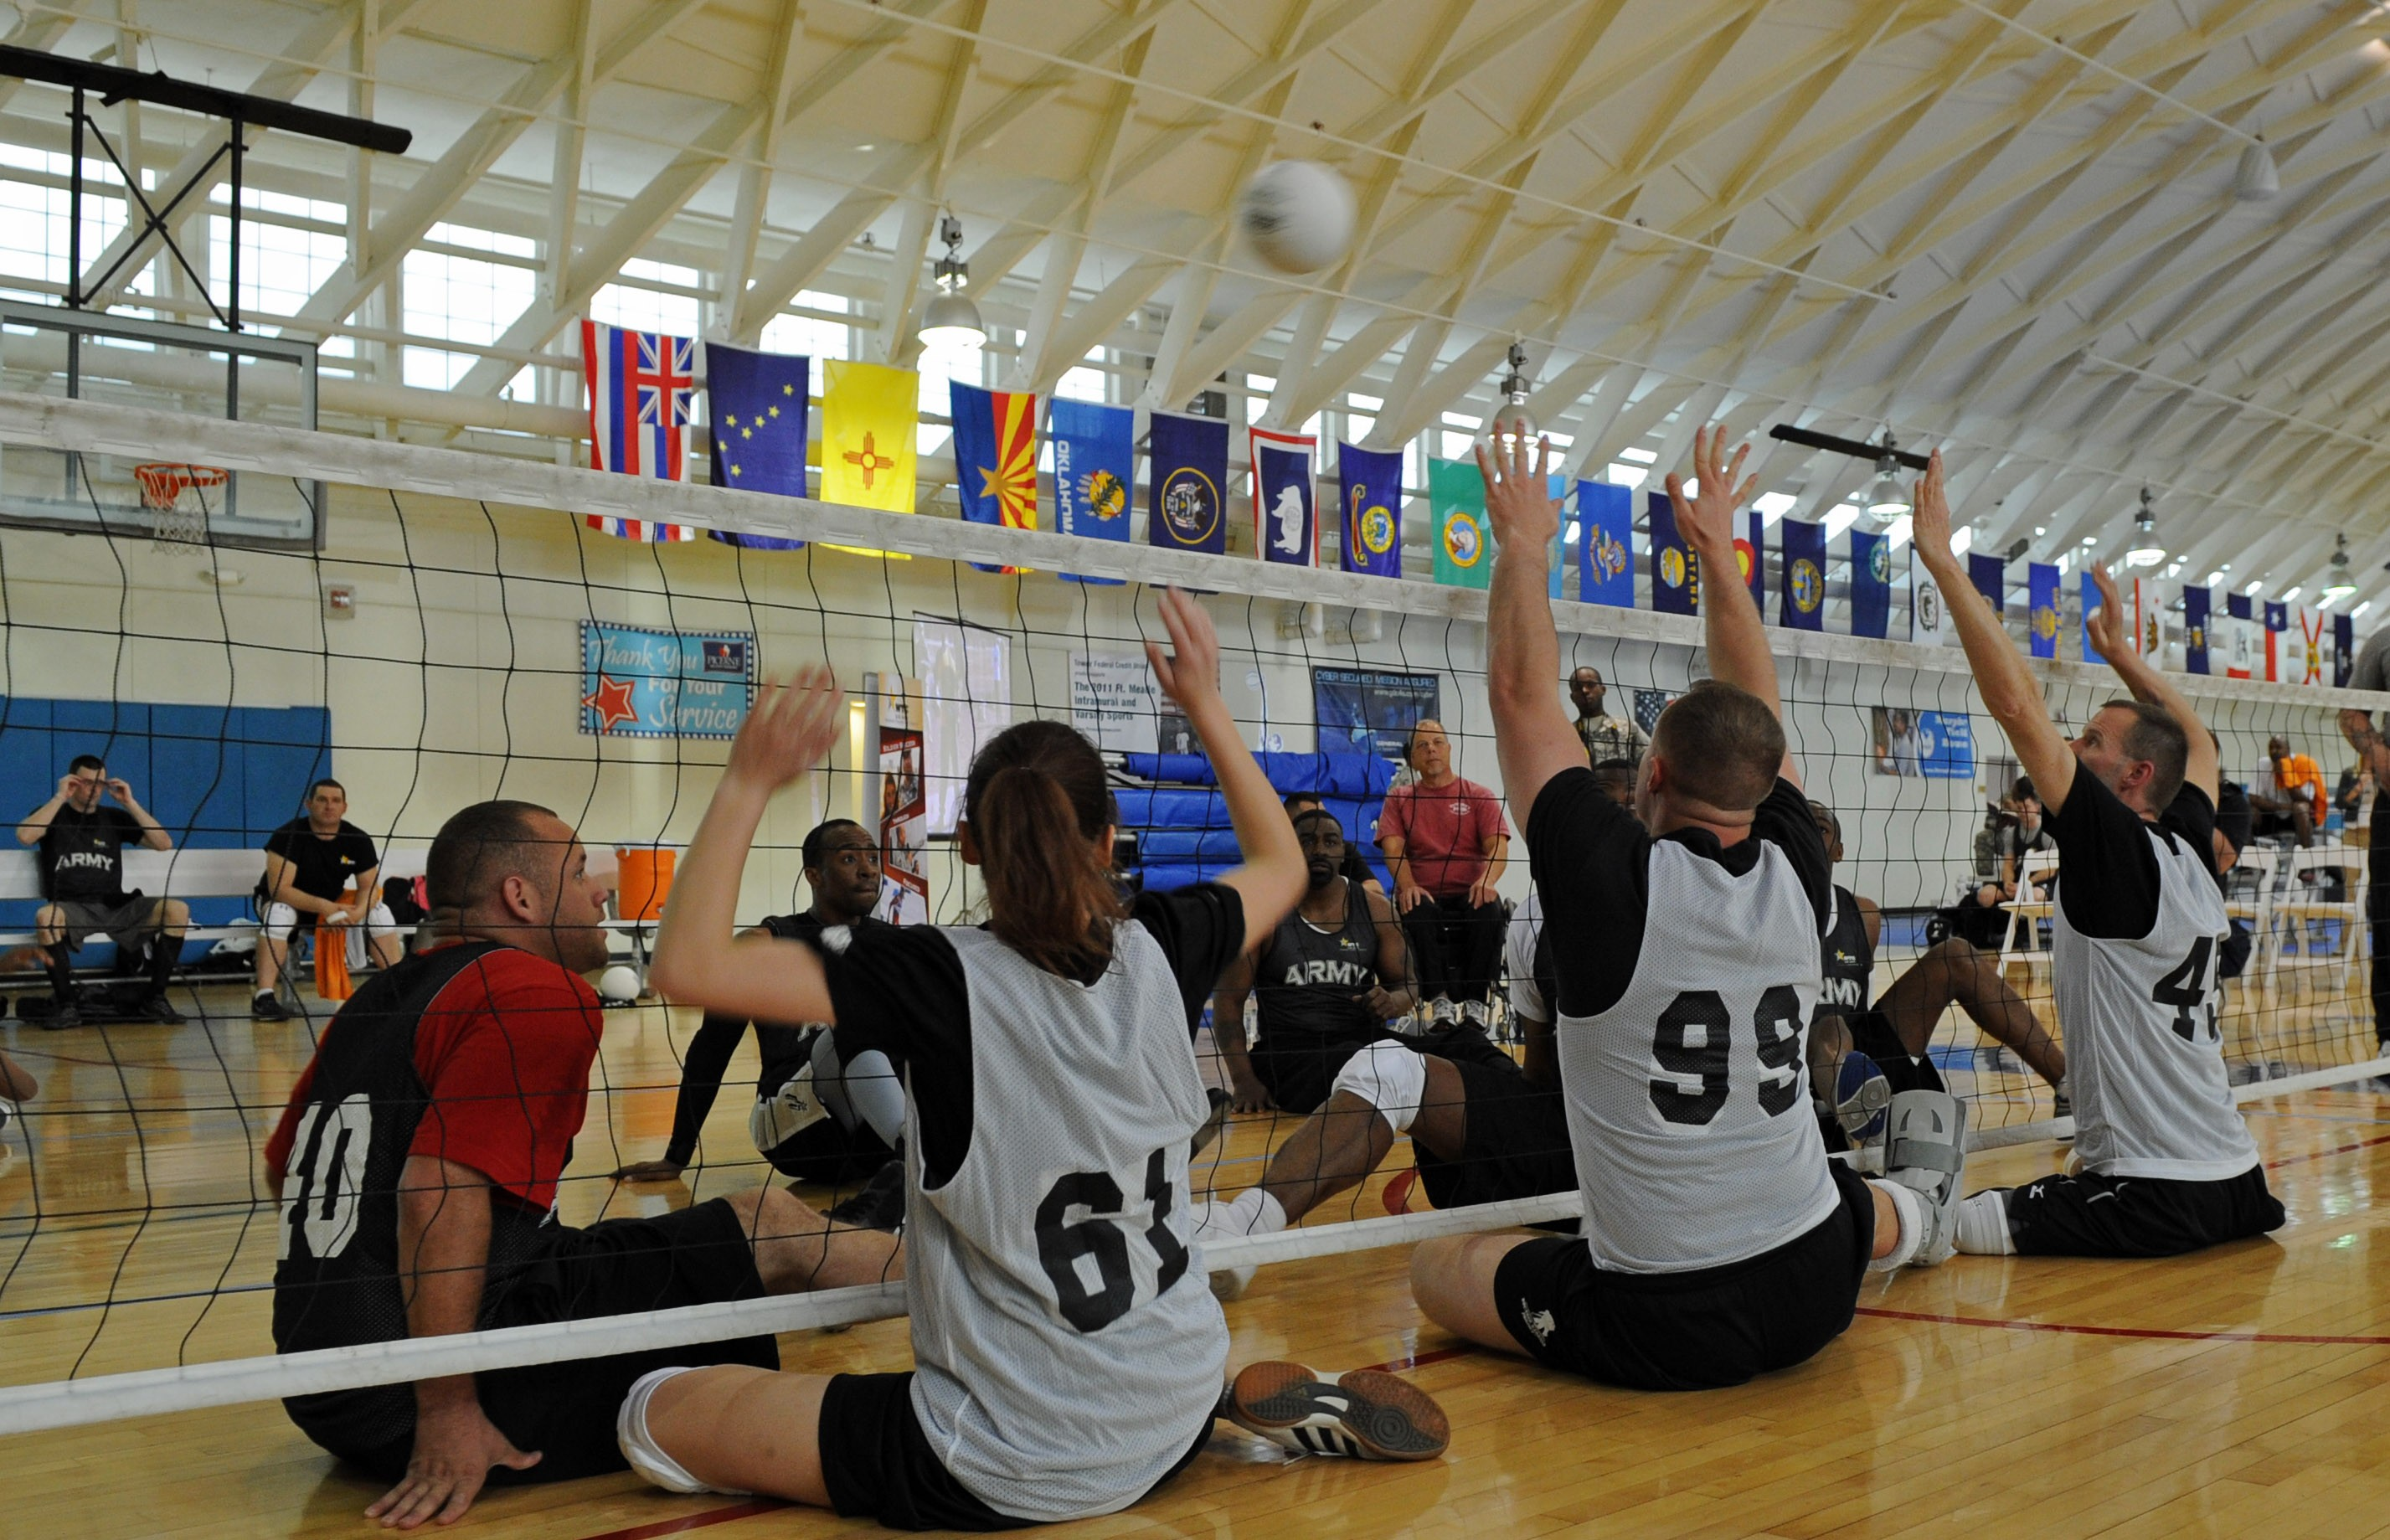 wheelchair volleyball picture frame moulding under chair rail army players on road to warrior games article the original